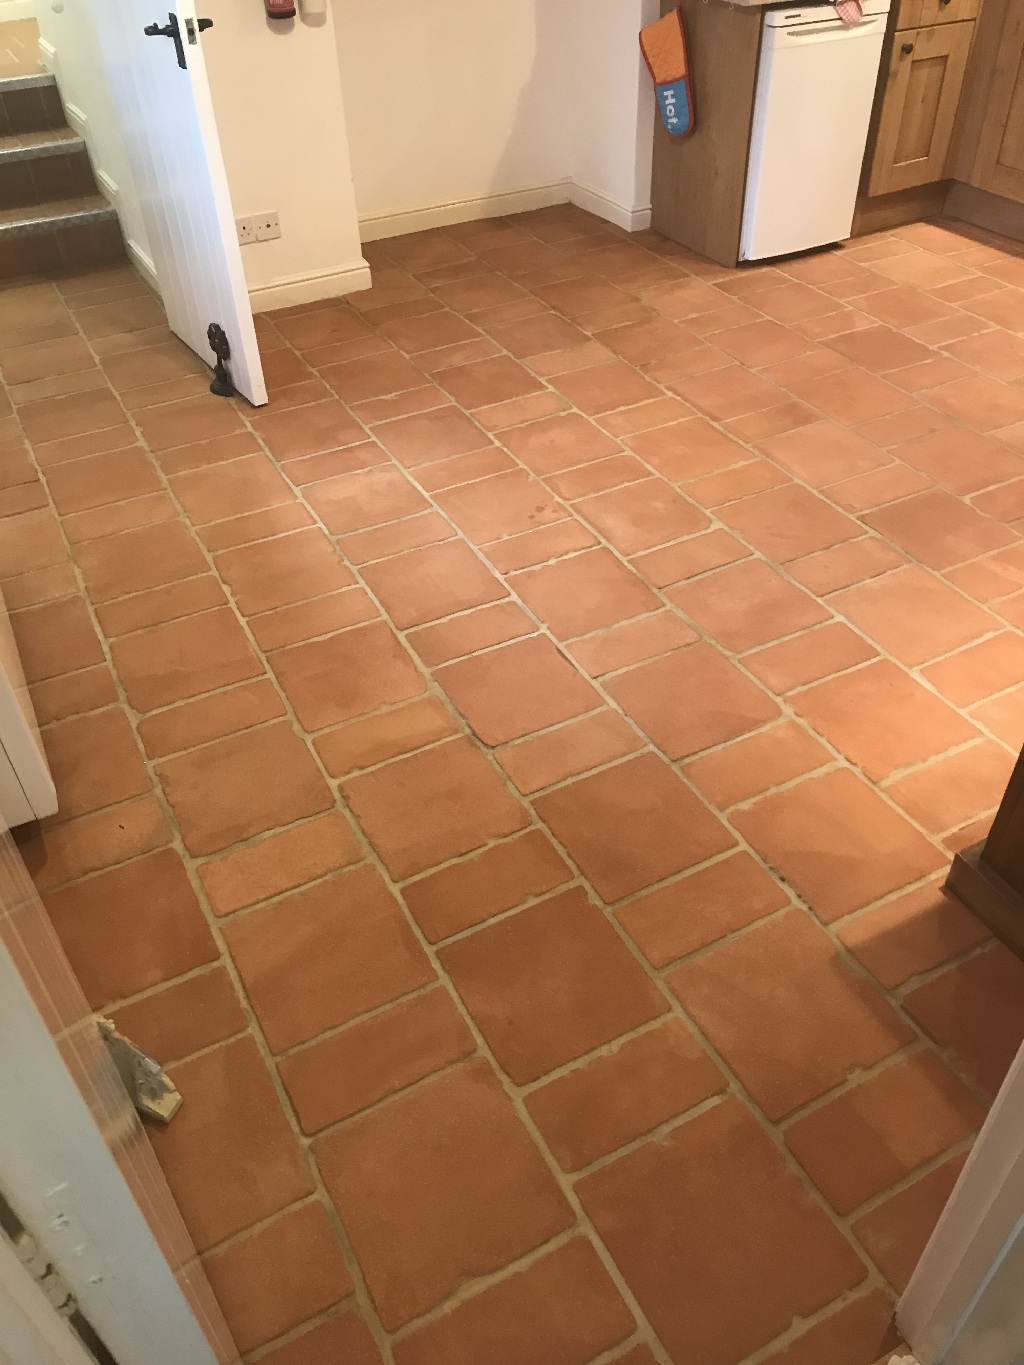 Terracotta Tiled Floor After Cleaning Symonds Yat Holiday Home